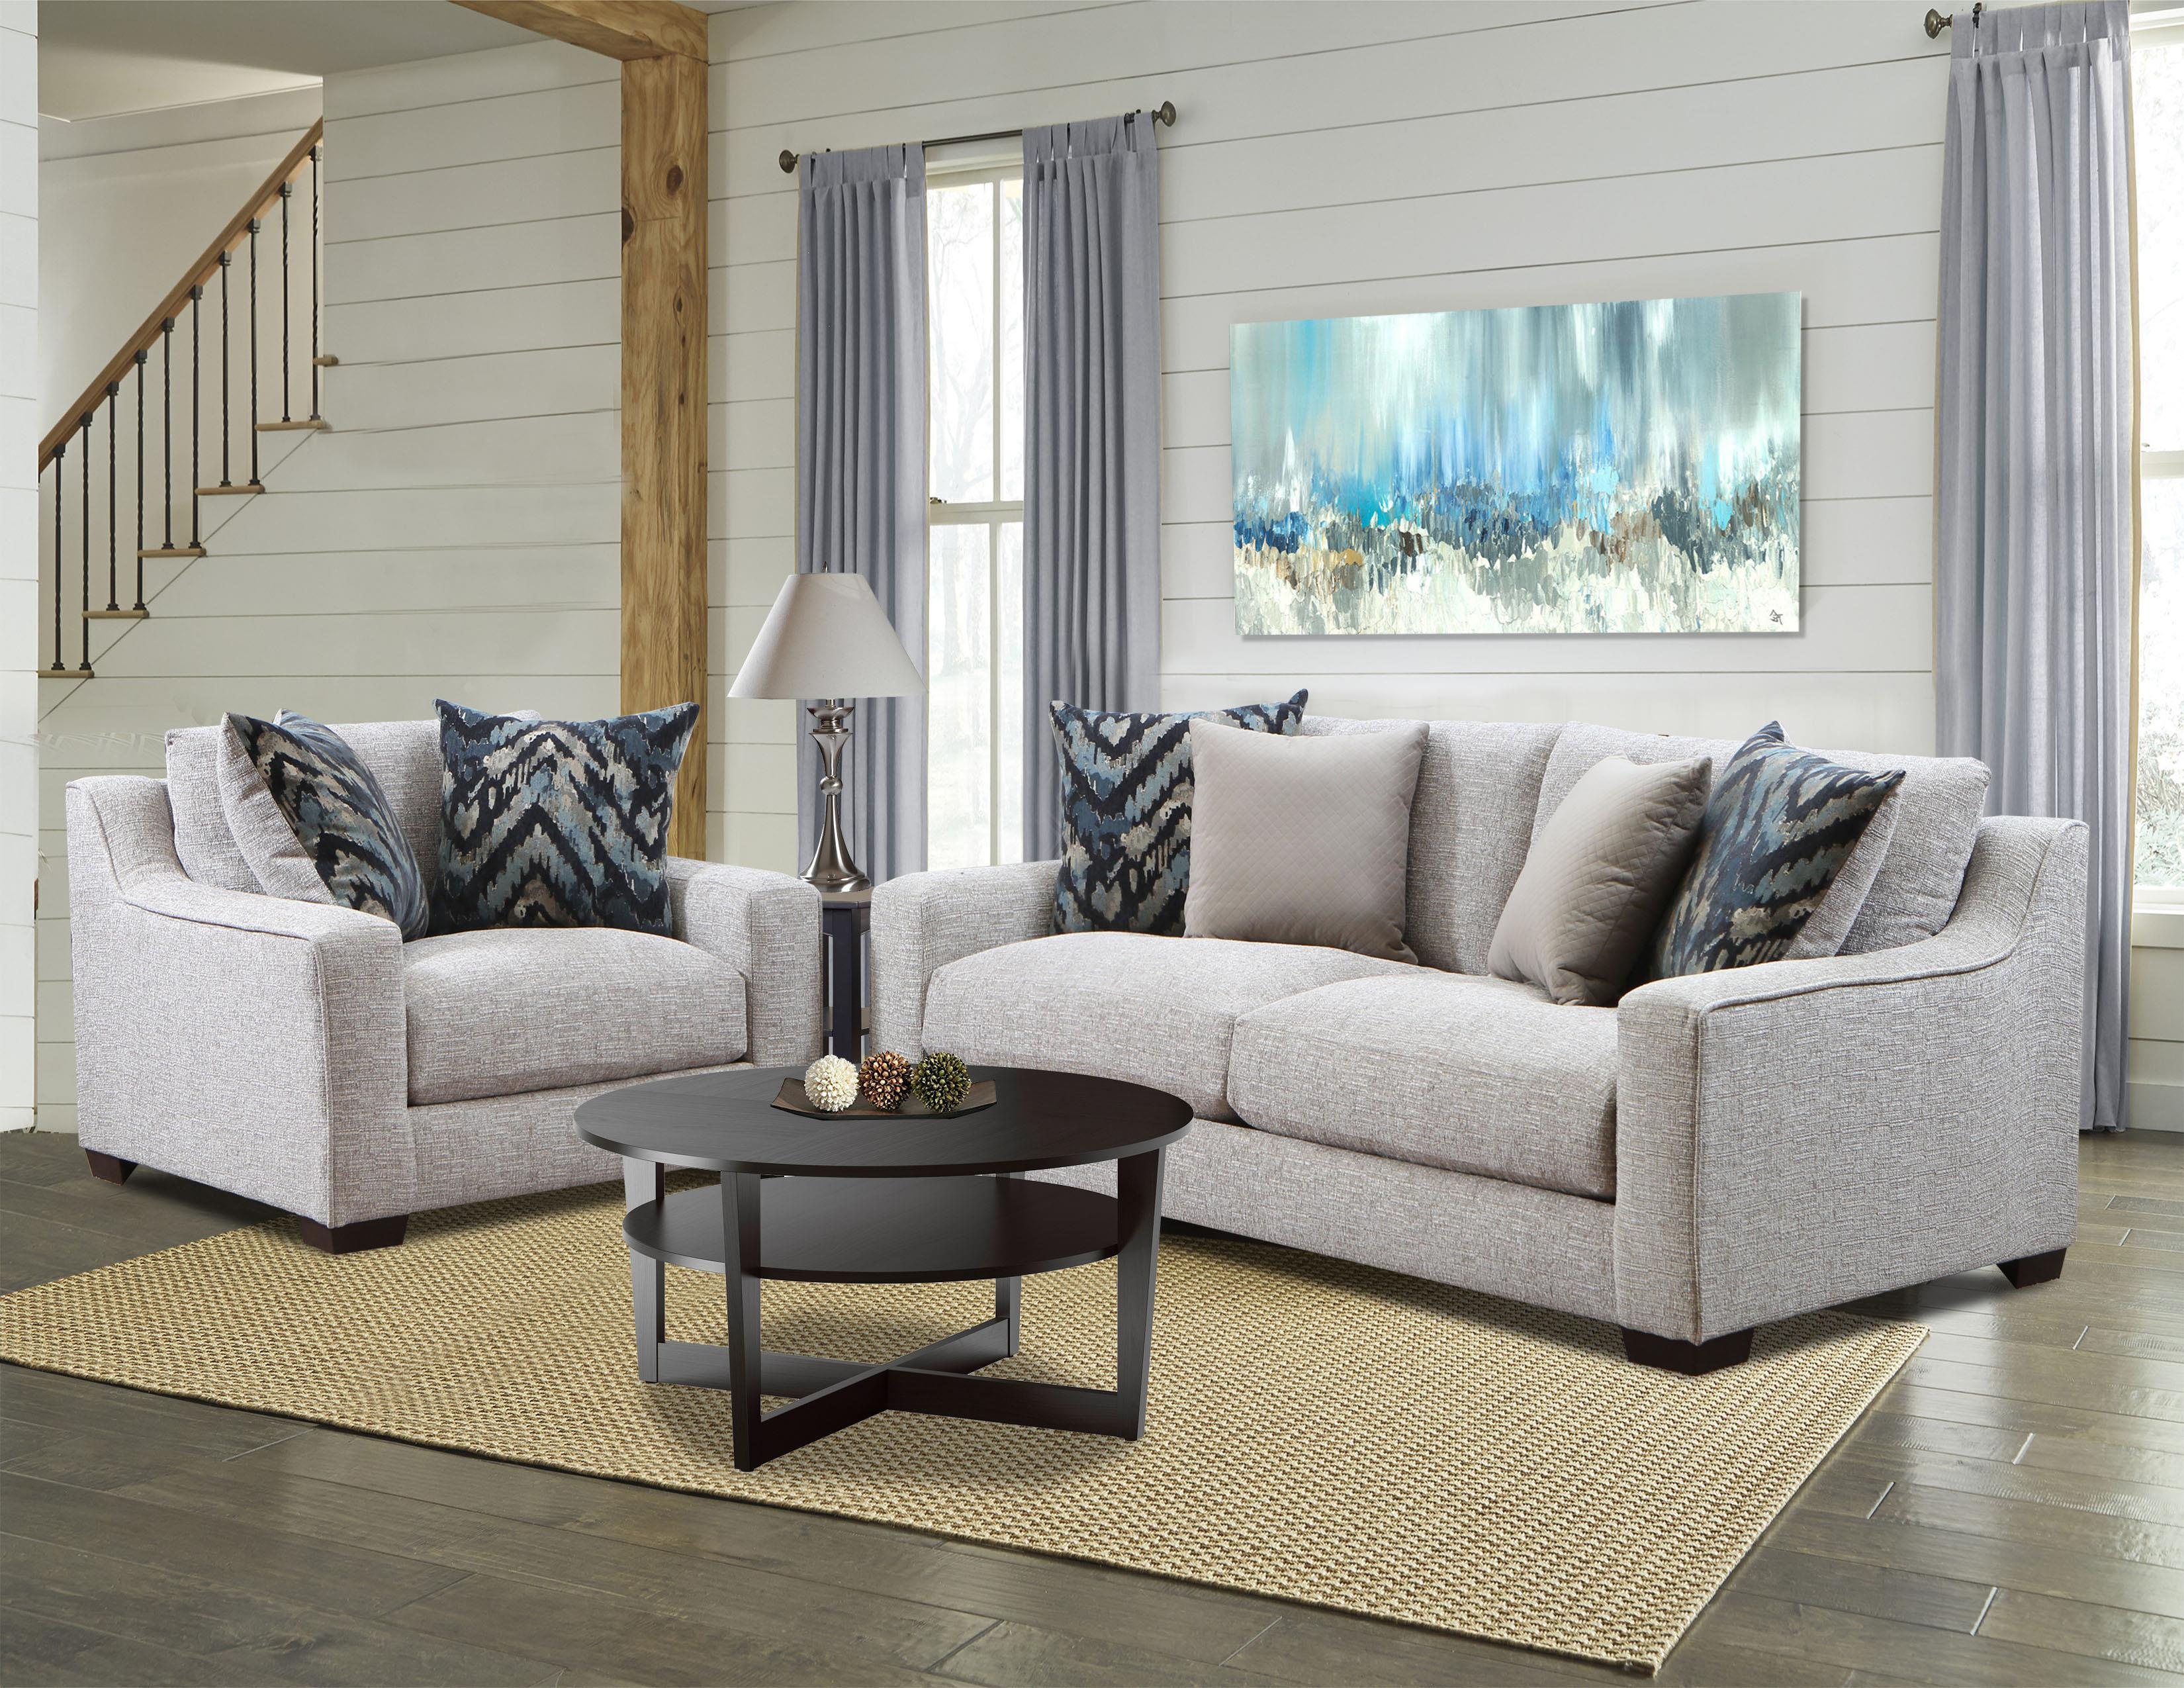 American Furniture 1400 Stationary Living Room Group - Item Number: 1400-2005 Group 1